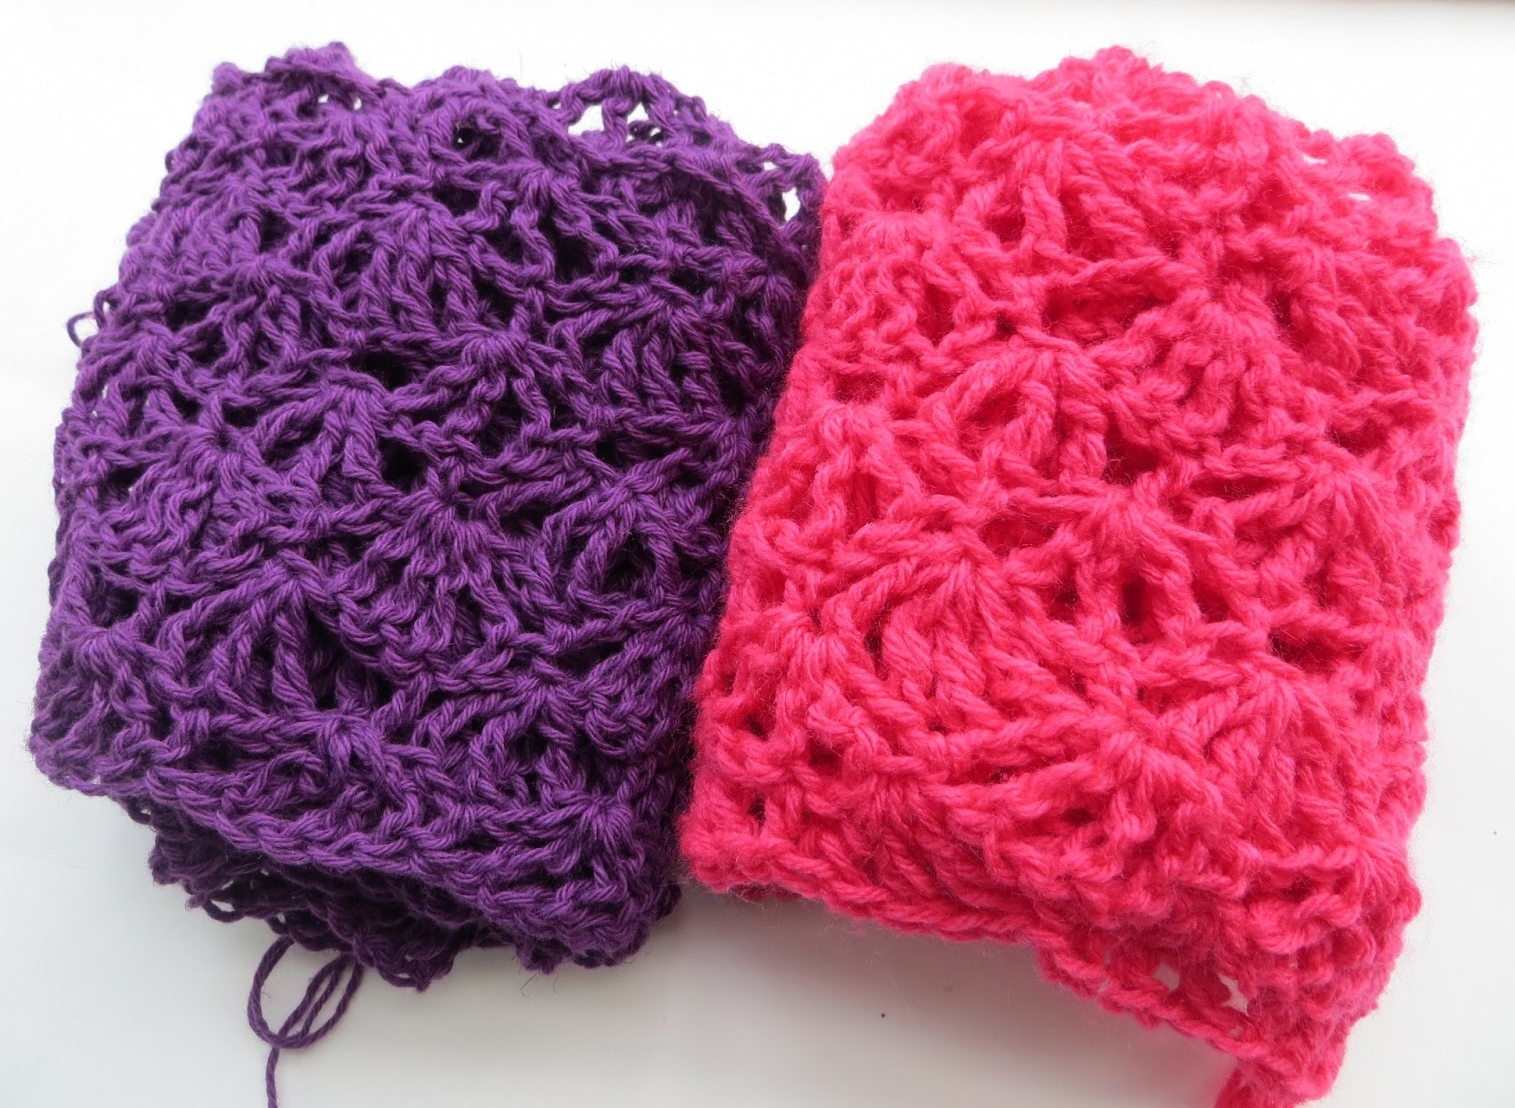 Crochet Videos : Crochet Dreamz: Alana Lacy Scarf, Free Crochet Pattern